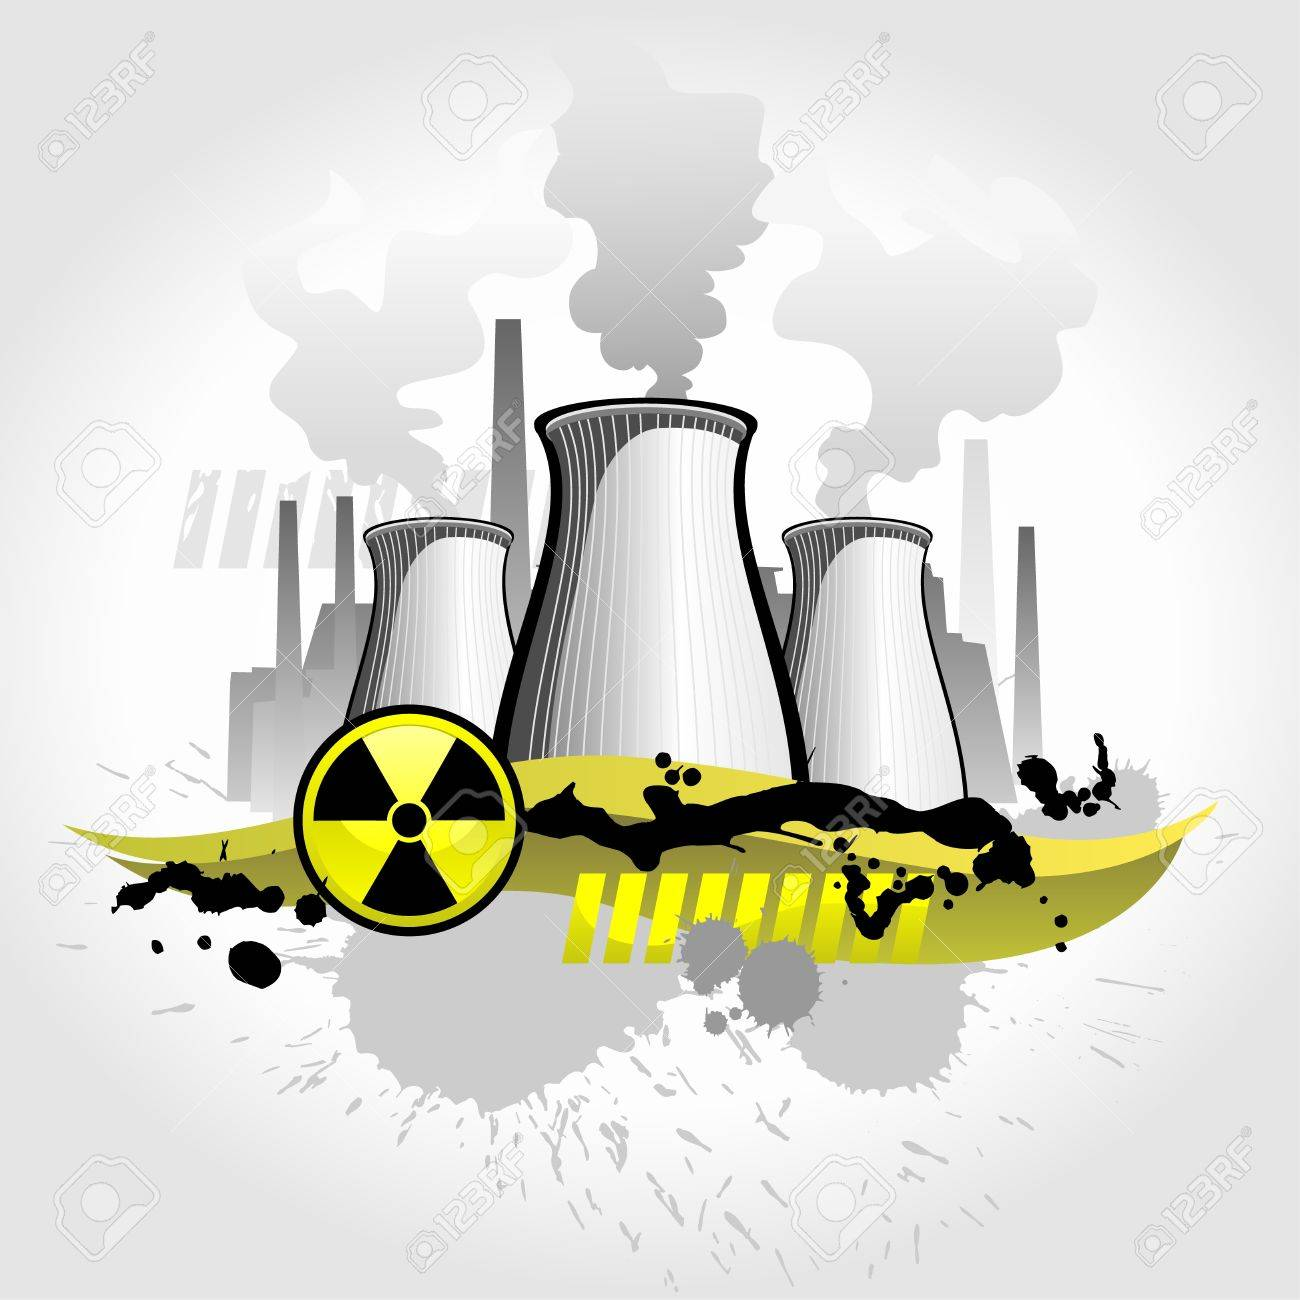 Nuclear plant abstract background - 9267172